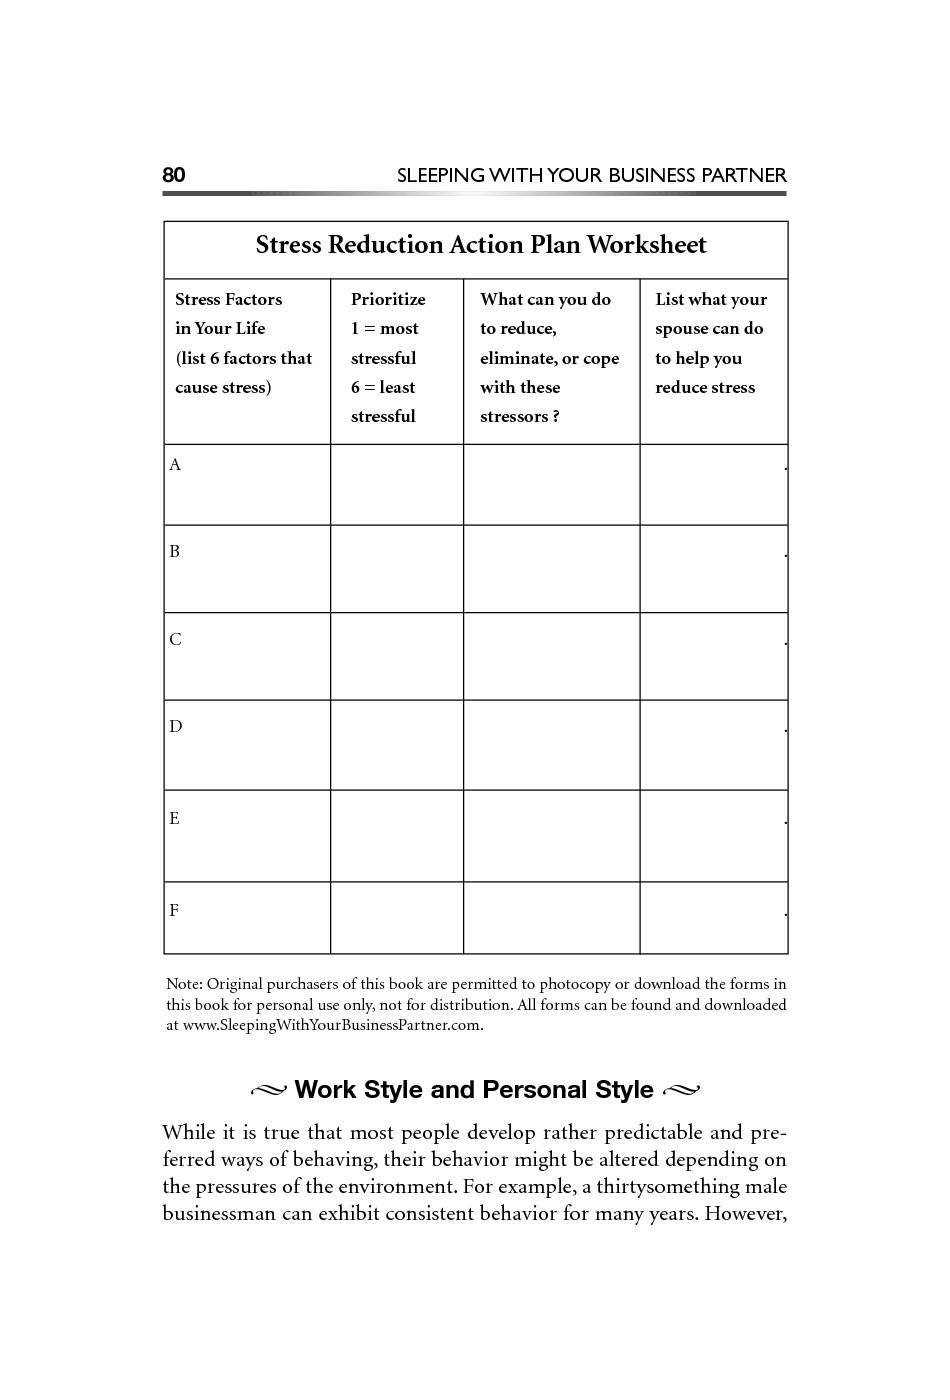 stress management worksheets | Stress Reduction Action Plan ...